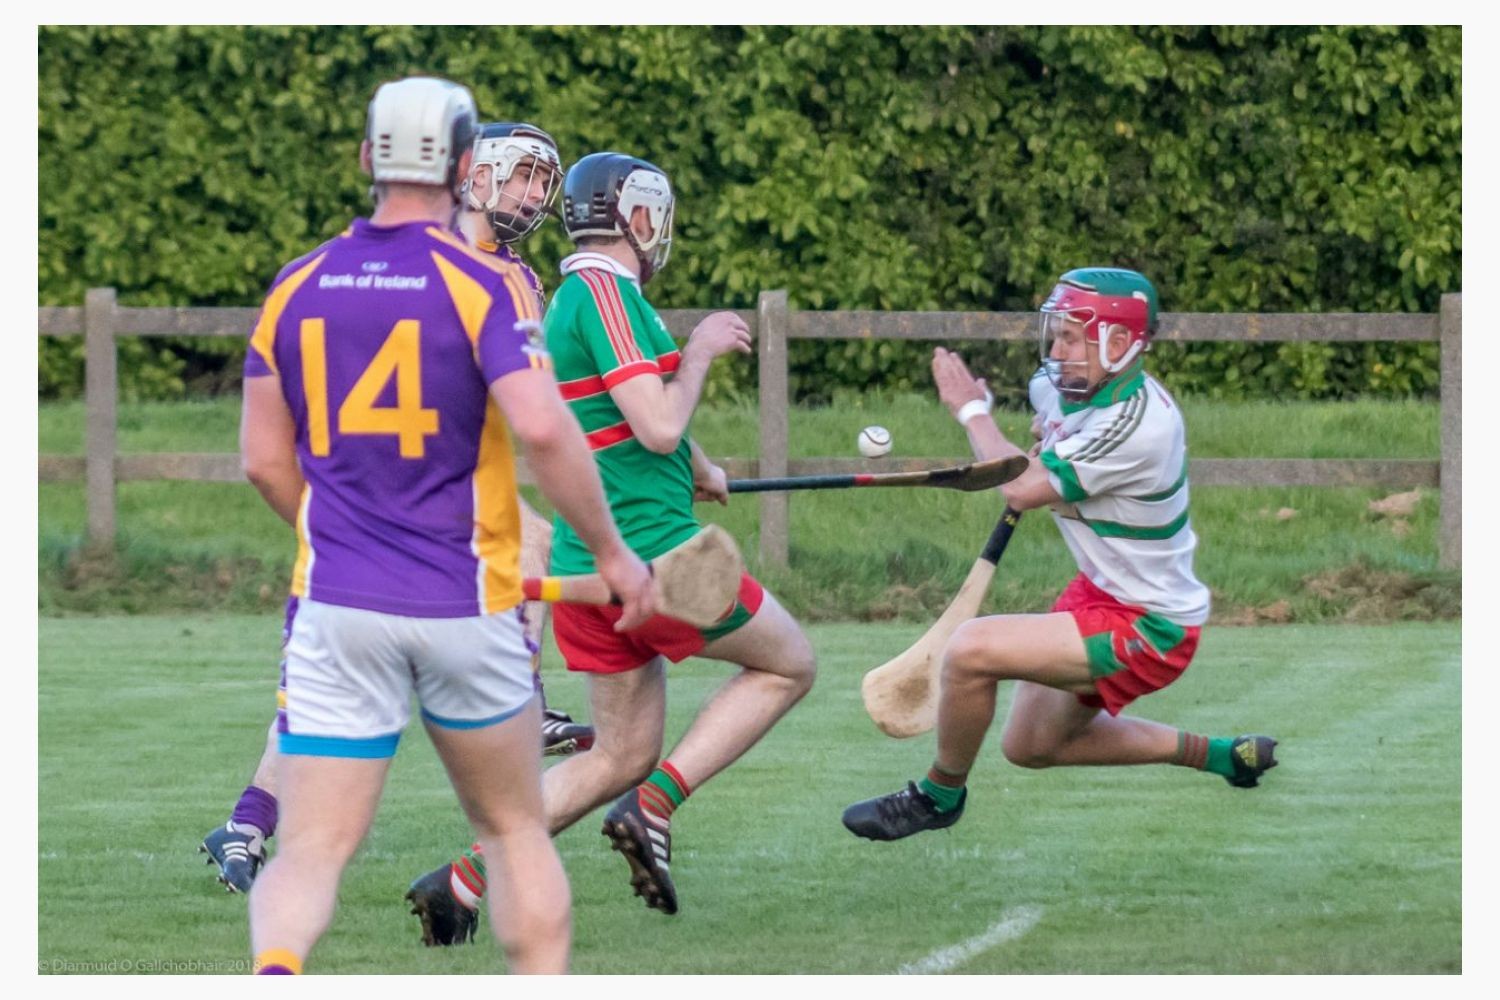 Championship - Senior Bs lose away to Naomh Barrog